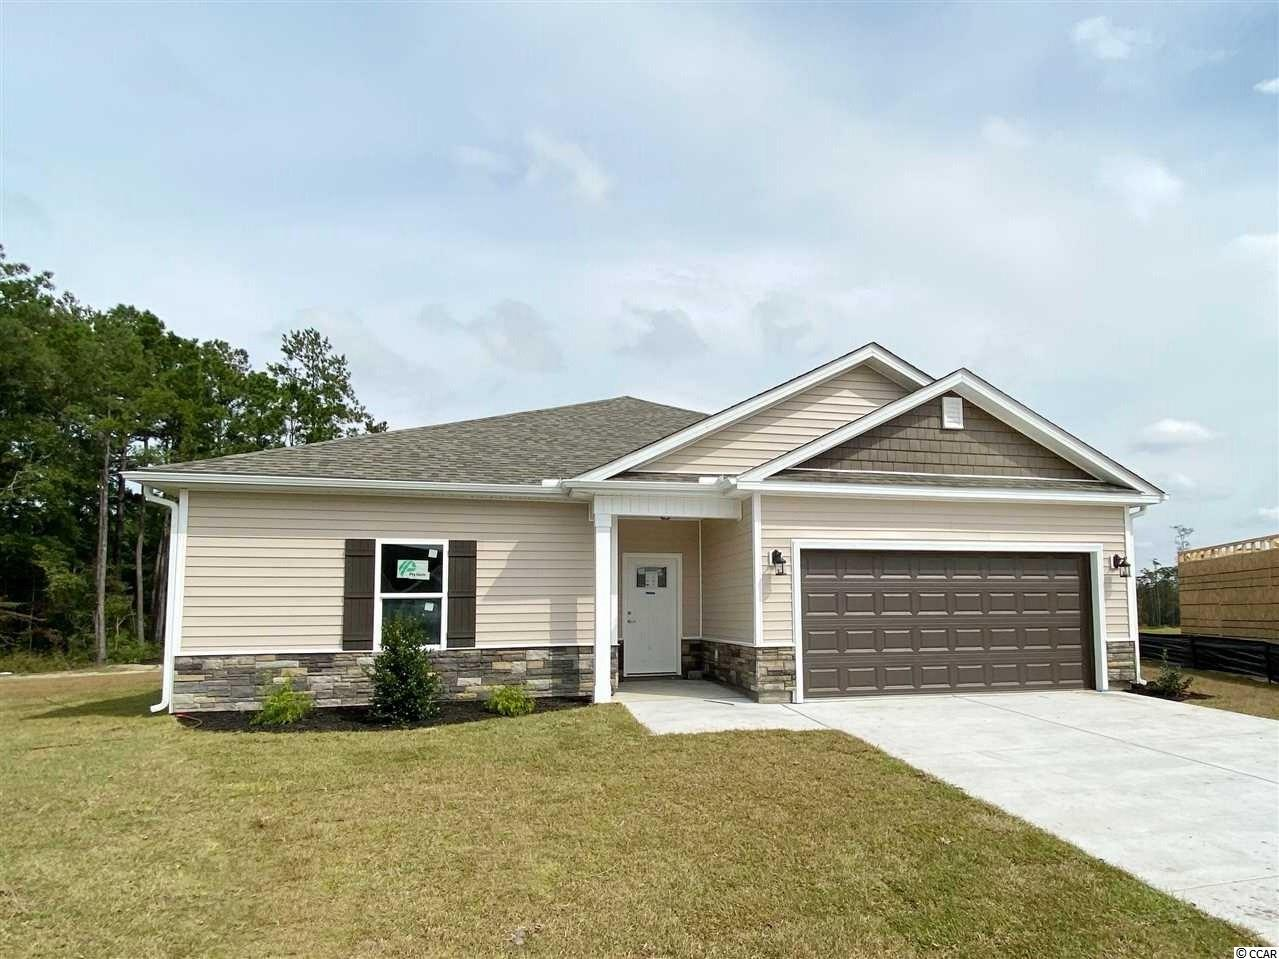 Located in a prime location right next to International Blvd and Highway 22. This new upscale natural gas community is conveniently near to some of  finest dining, shopping, golf, beaches, schools, hospitals, and downtown Conway, Myrtle Beach, and North Myrtle Beach. The Sean, two story model with a loft features a spacious open floor plan of the main living areas, with LVP flooring and crown molding throughout. The kitchen comes with stainless steel appliances, upgraded soft close cabinets, granite countertops, a gas range, large work island with a breakfast bar, and a pantry for extra storage. The master suite includes double sink vanities and two large walk-in closets. Each bedroom includes a ceiling fan and plenty of closet space, with easy access to the second bathroom. Other features include 9' ceilings on the first floor, an optional gas HVAC system, tankless gas water heater, wifi thermostat, and much more. The Reserves at Heritage Downs will include a large lake with walking trails around it, and large open recreation areas for kids to play. Stop by the model home for more information about the new community, other model homes, land home packages, upgrades, POOL options. Yes! You can have a pool in your very own back yard.